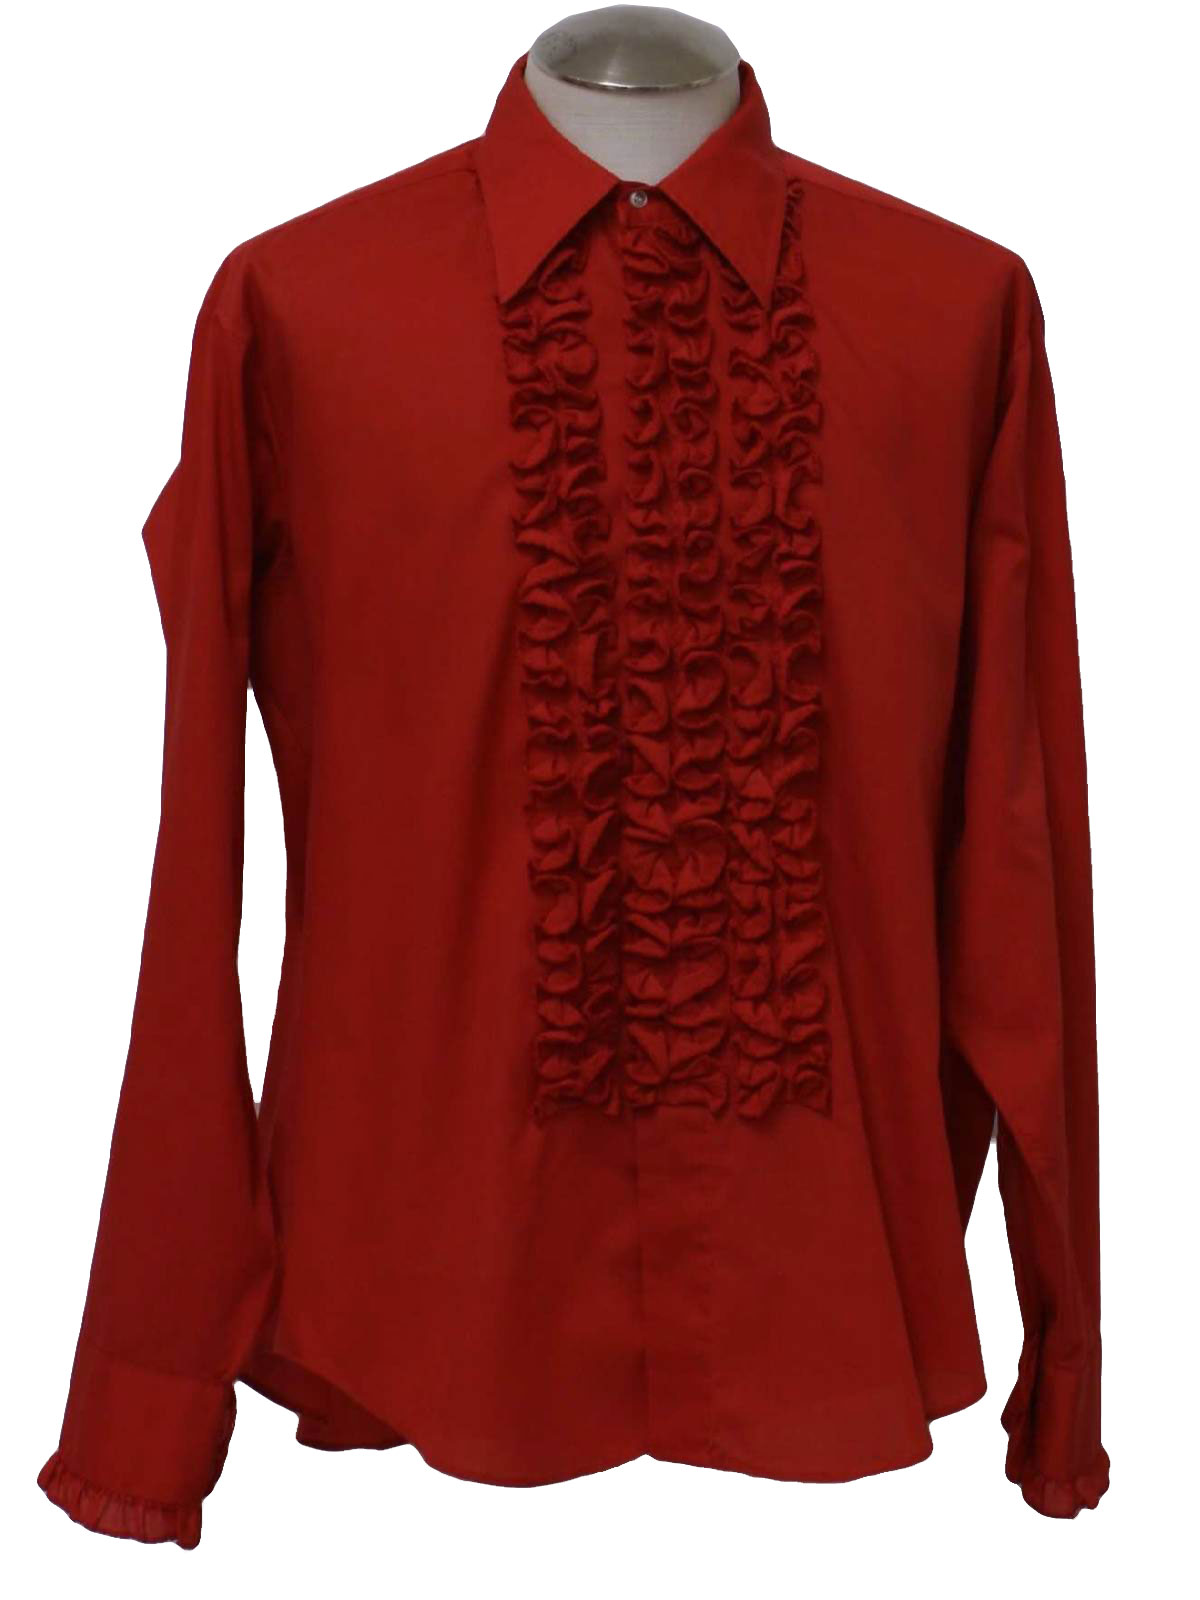 70 39 s vintage shirt 70s jims formal wear mens red for Can you wear cufflinks on a regular shirt